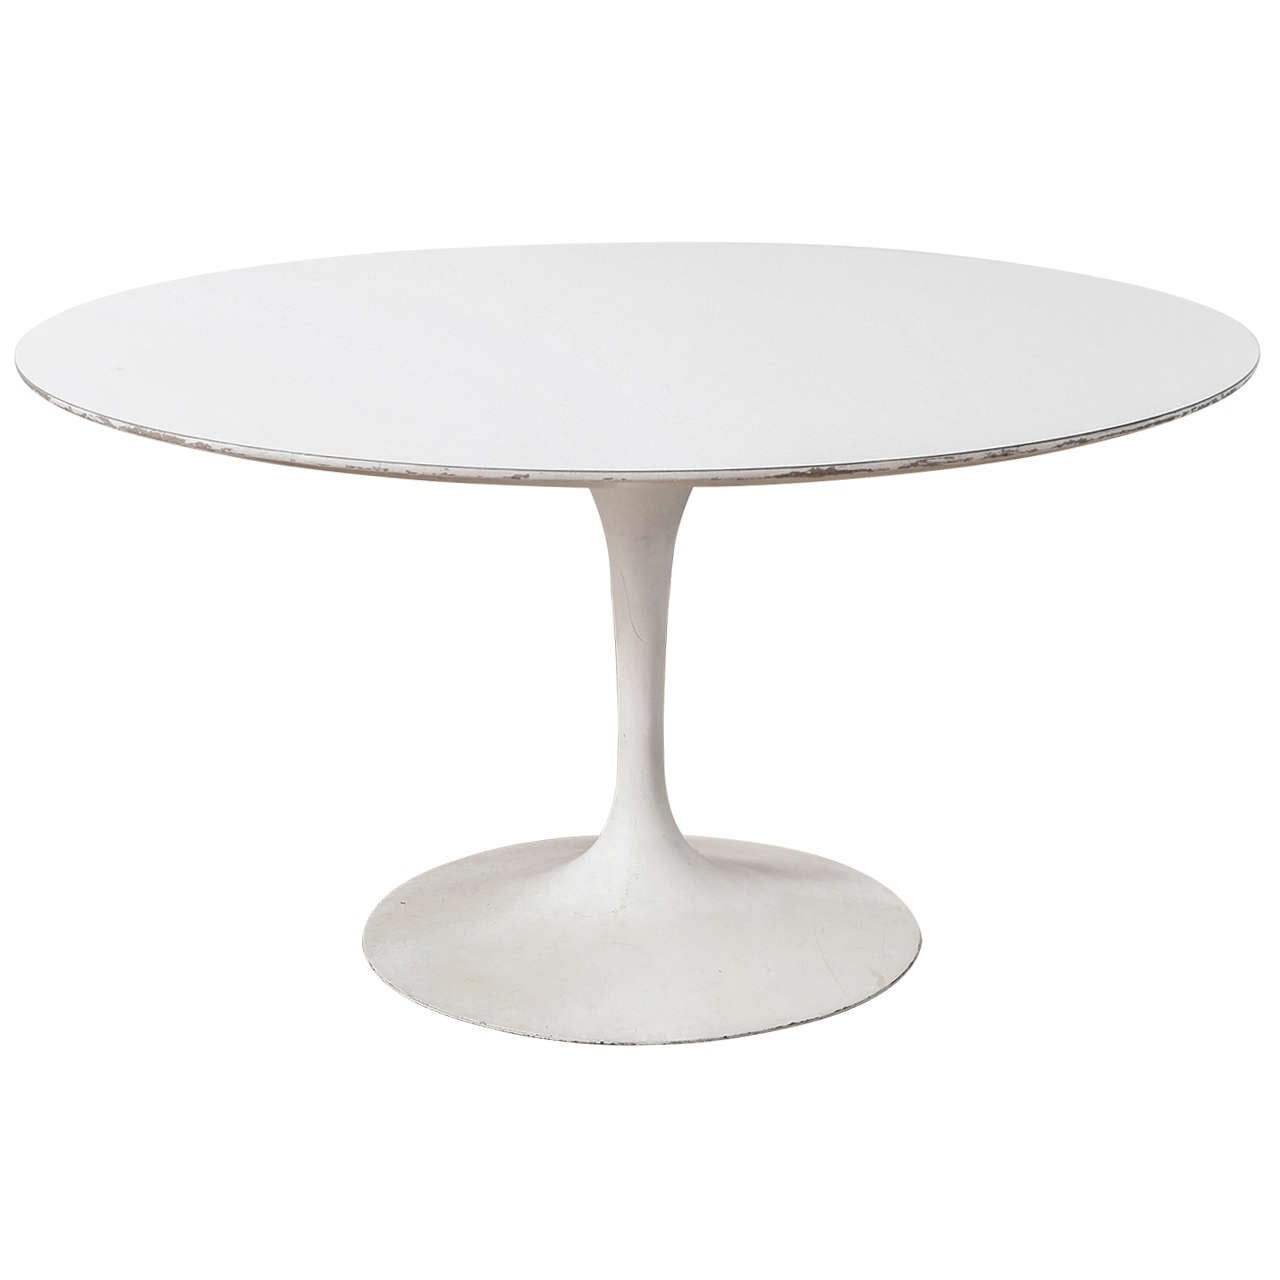 Distressed Saarinen for Knoll Tulip Table For Sale at 1stdibs : X from www.1stdibs.com size 1280 x 1280 jpeg 26kB